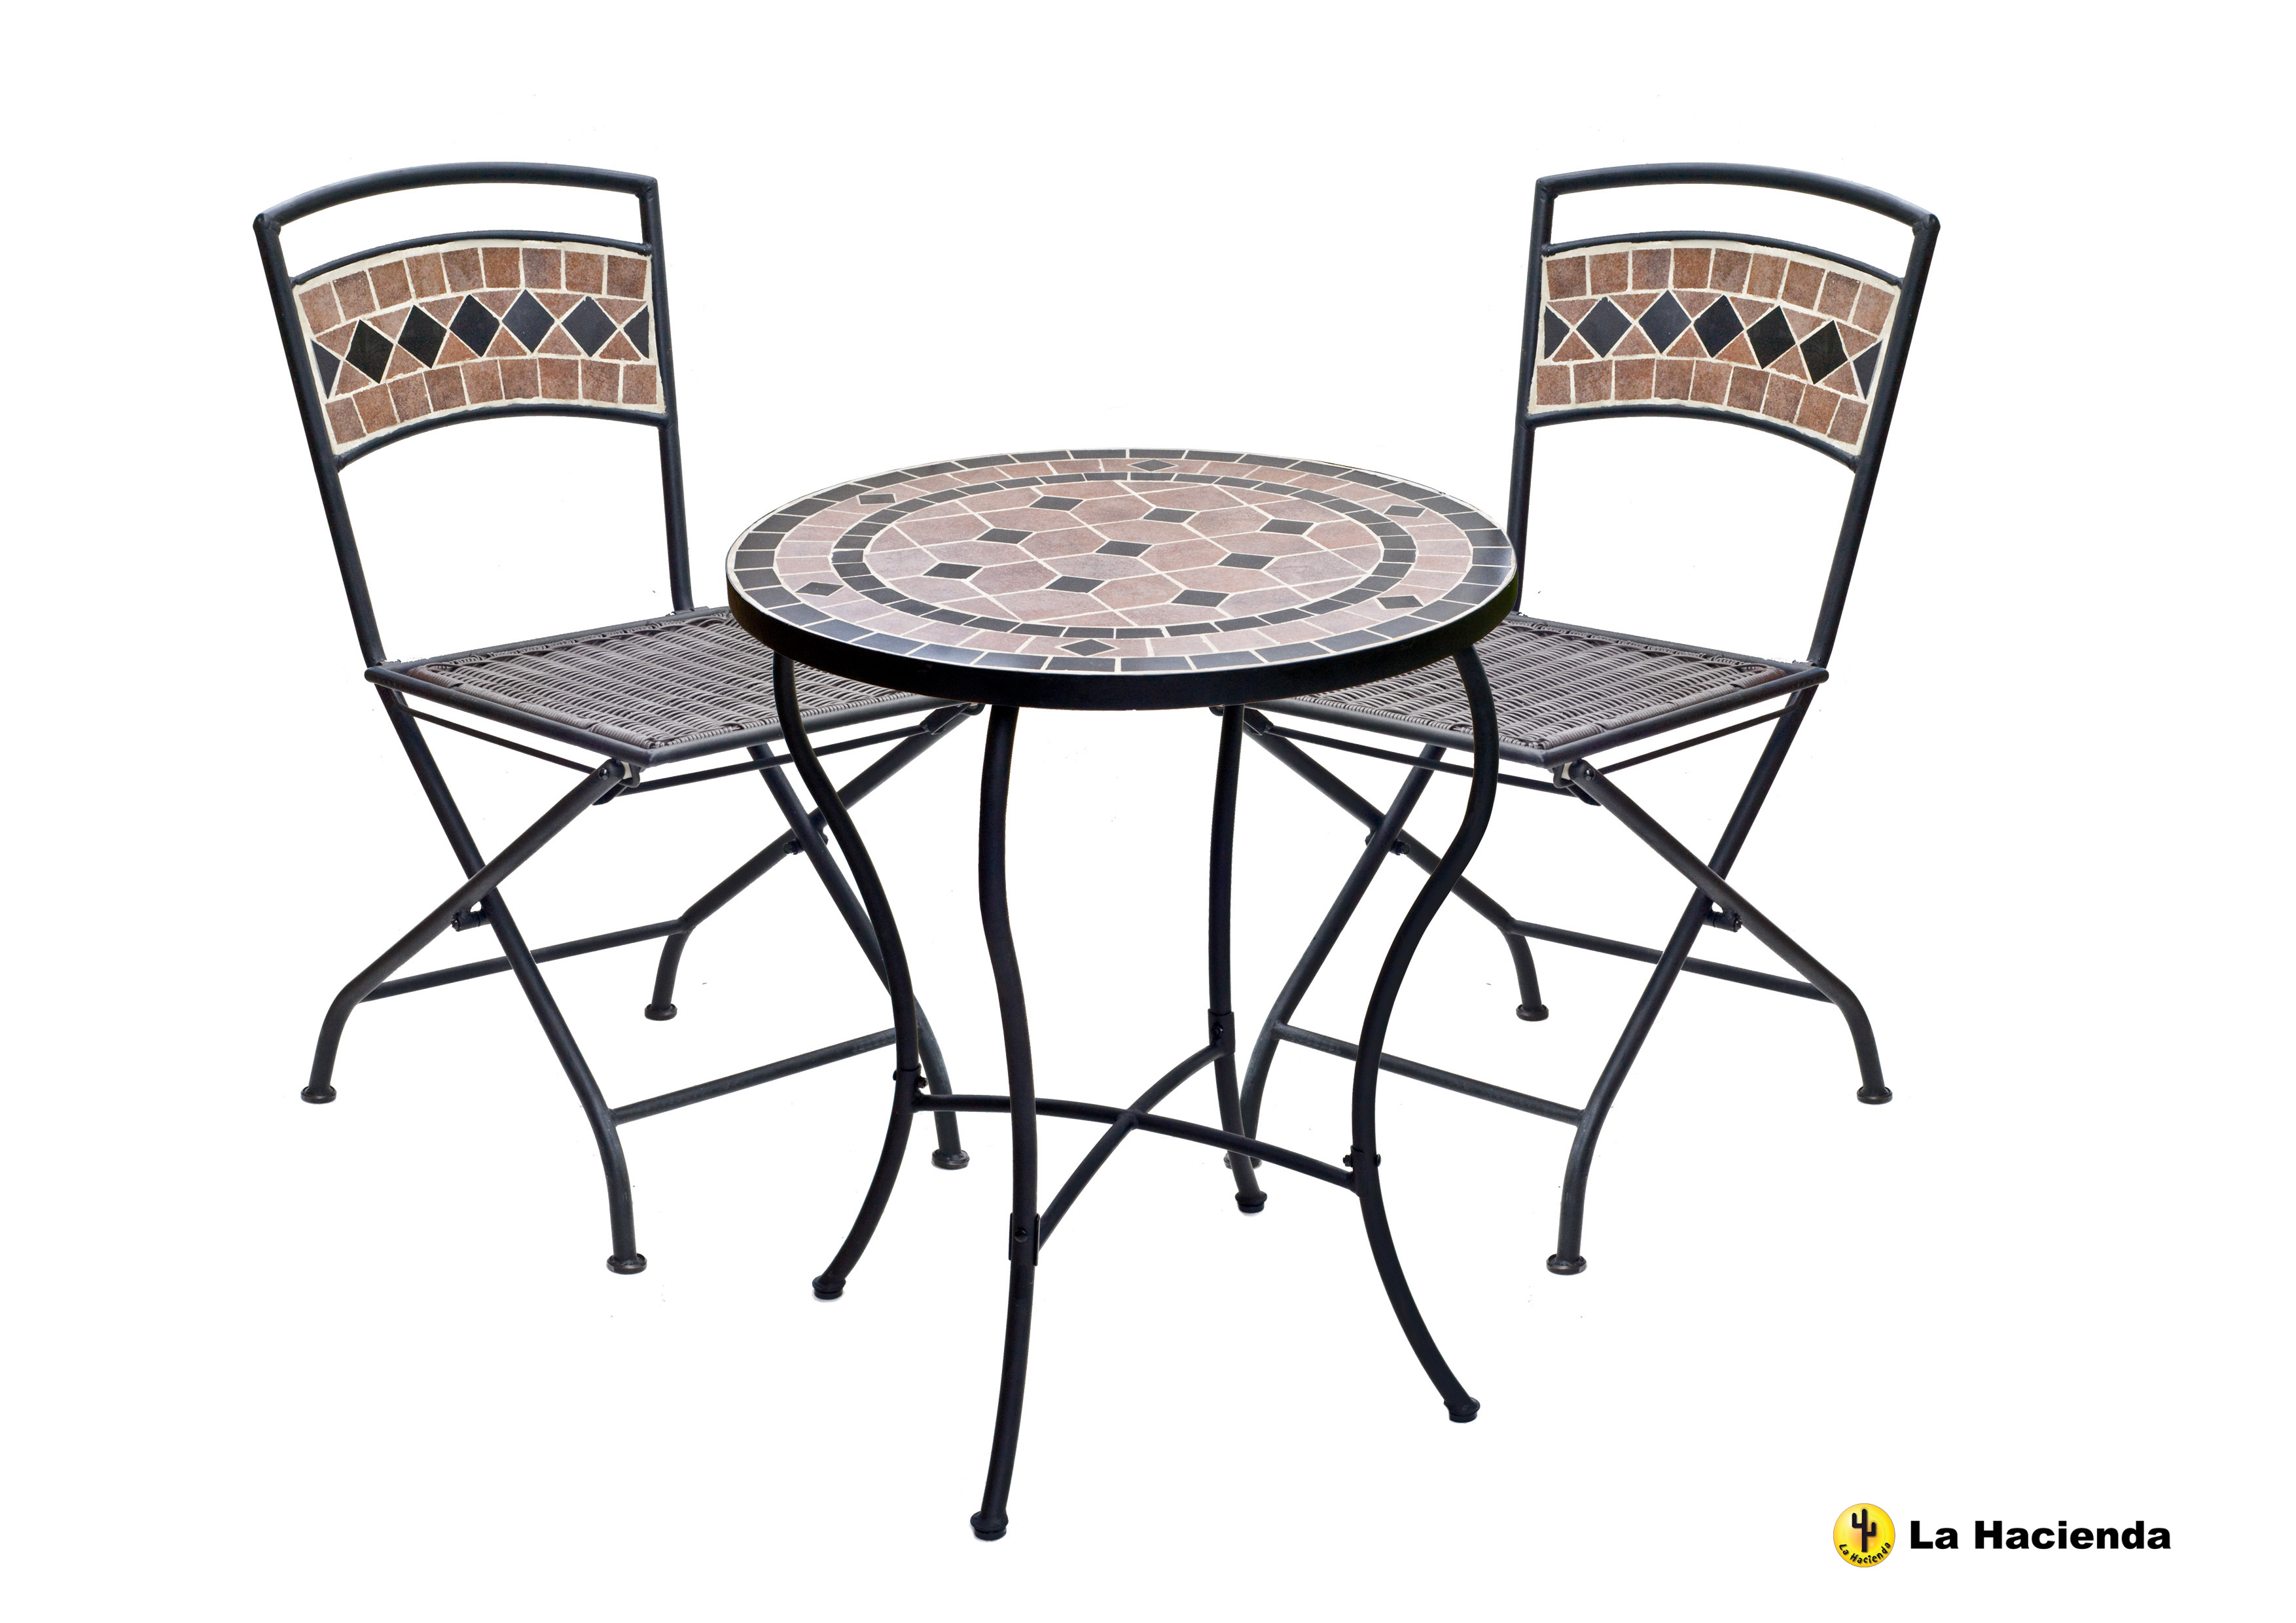 2 chairs and table patio set santa chair covers amazon pompei bistro garden